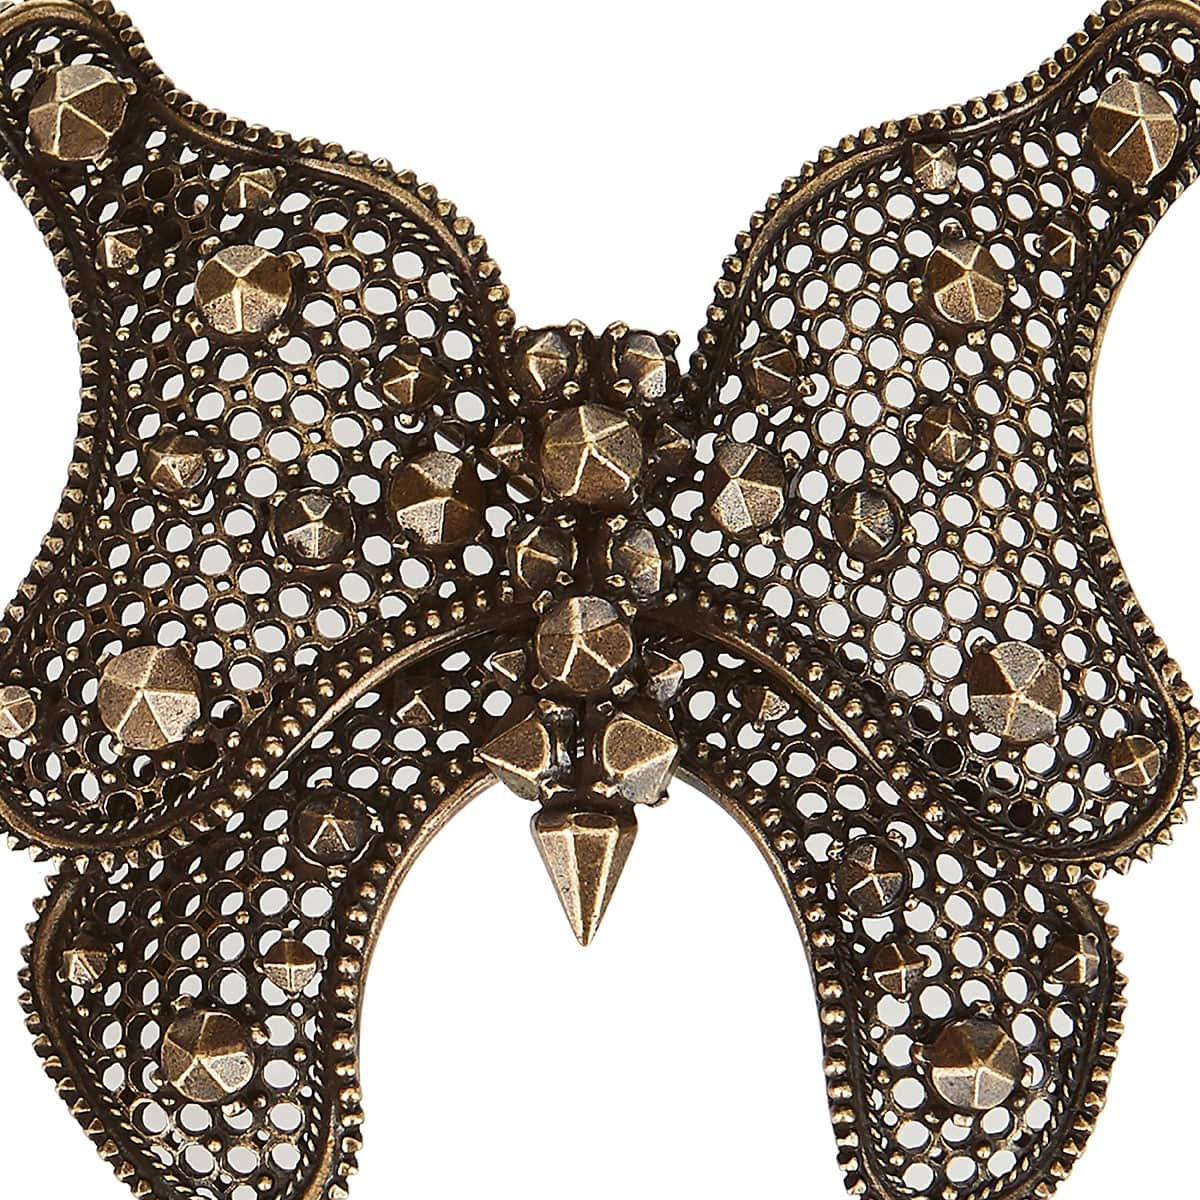 Studded brass butterfly brooch